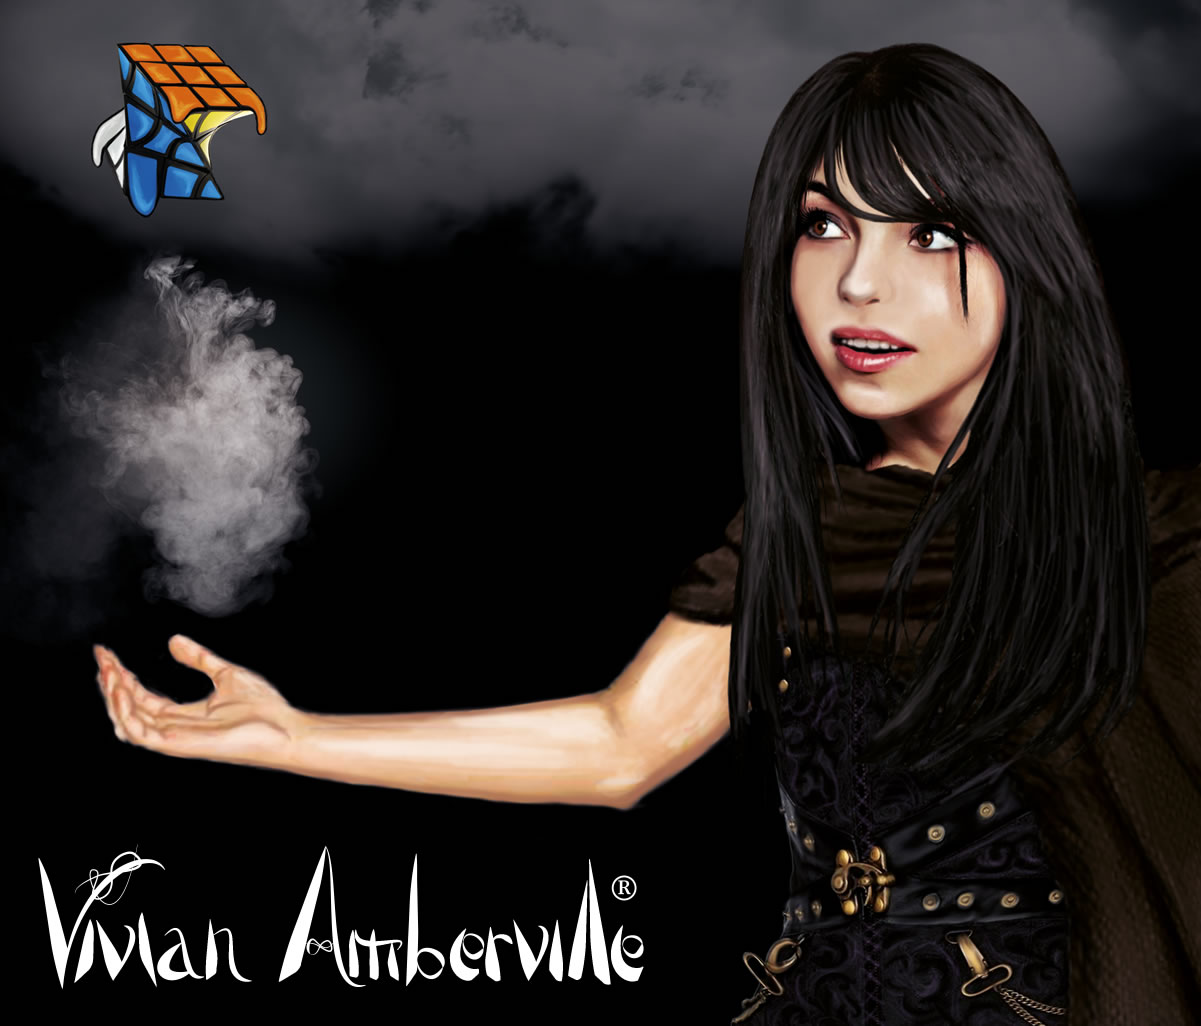 Vivian is the main protagonist of the Vivian Amberville fantasy book franchise